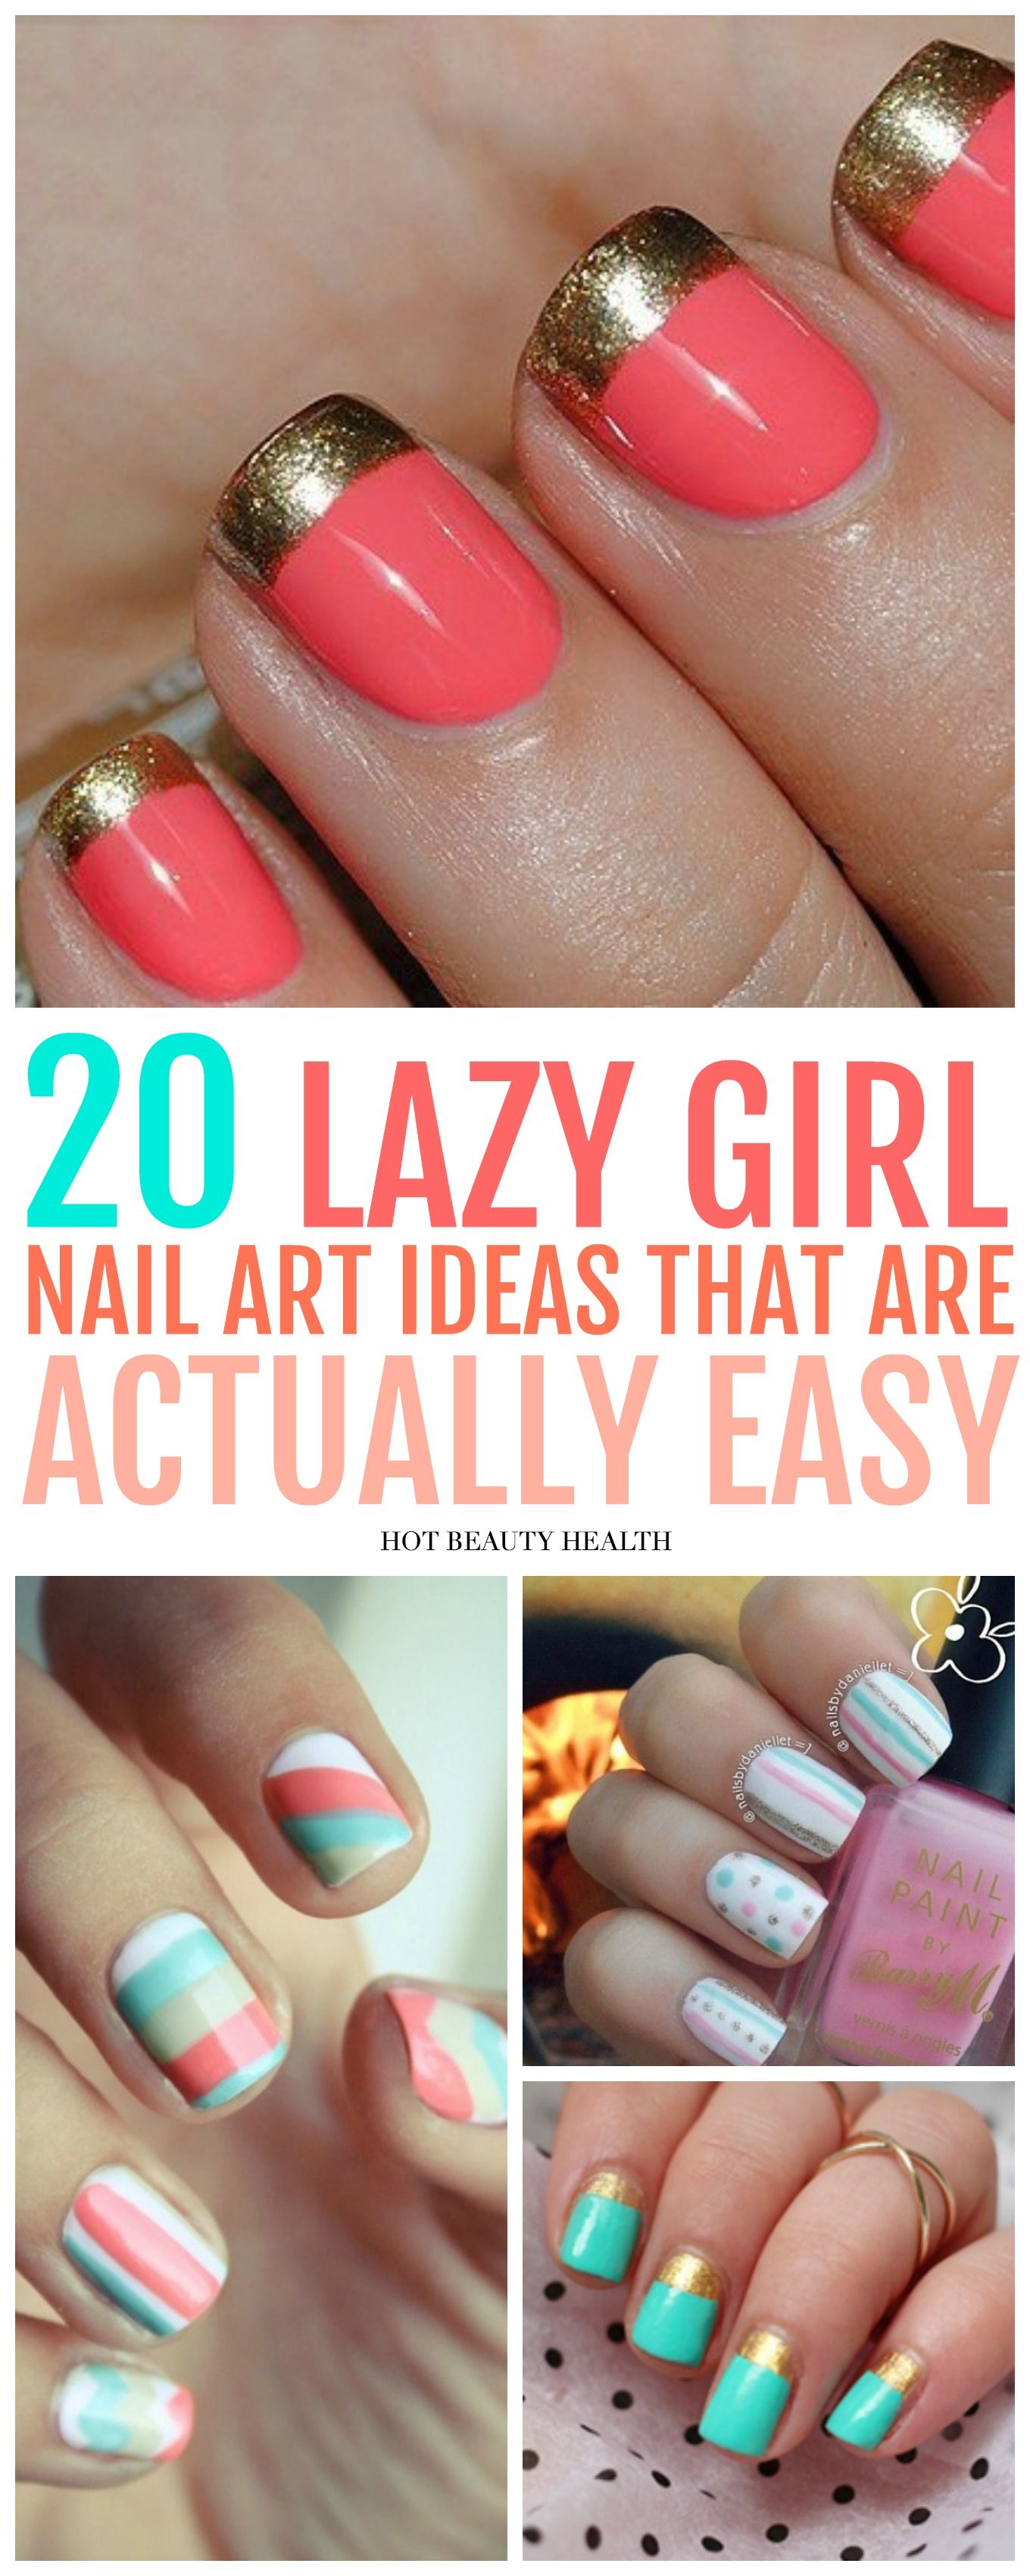 20 Lazy Girl Nail Art Ideas That Are Actually Easy | Simple nail art ...